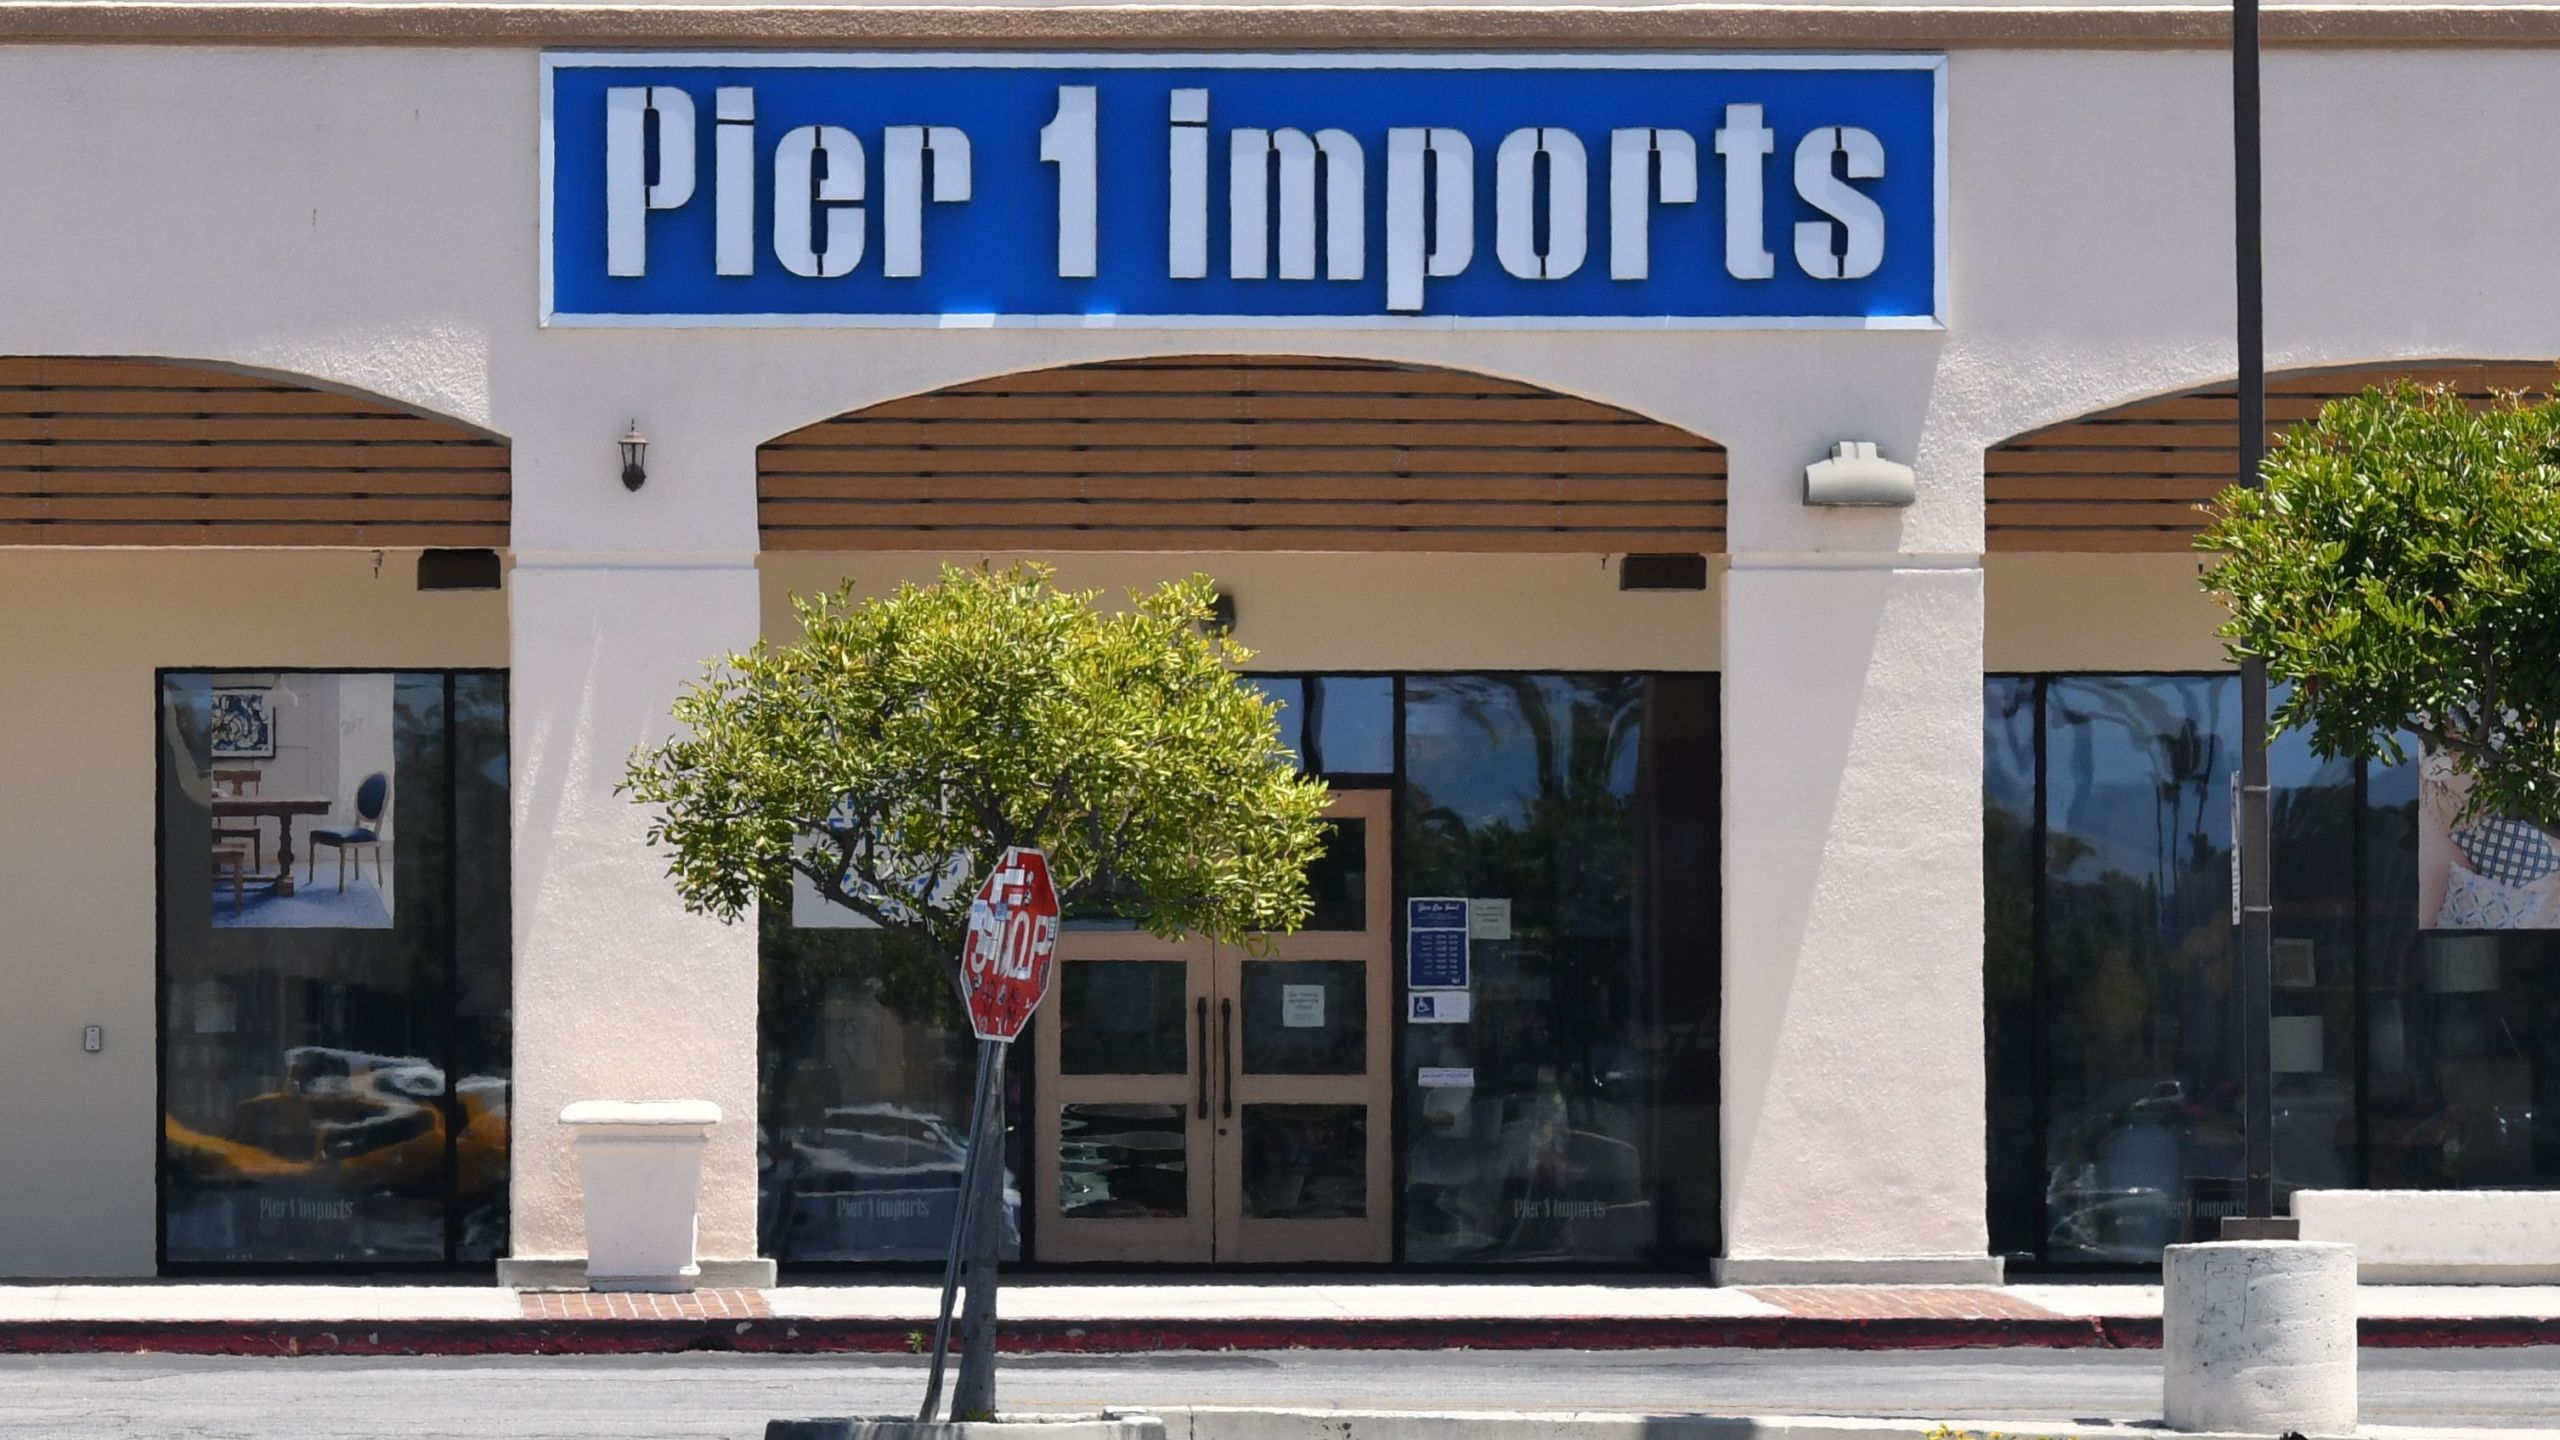 A closed Pier 1 Imports store in Culver City, California, on May 20 2020. (CHRIS DELMAS/AFP via Getty Images)